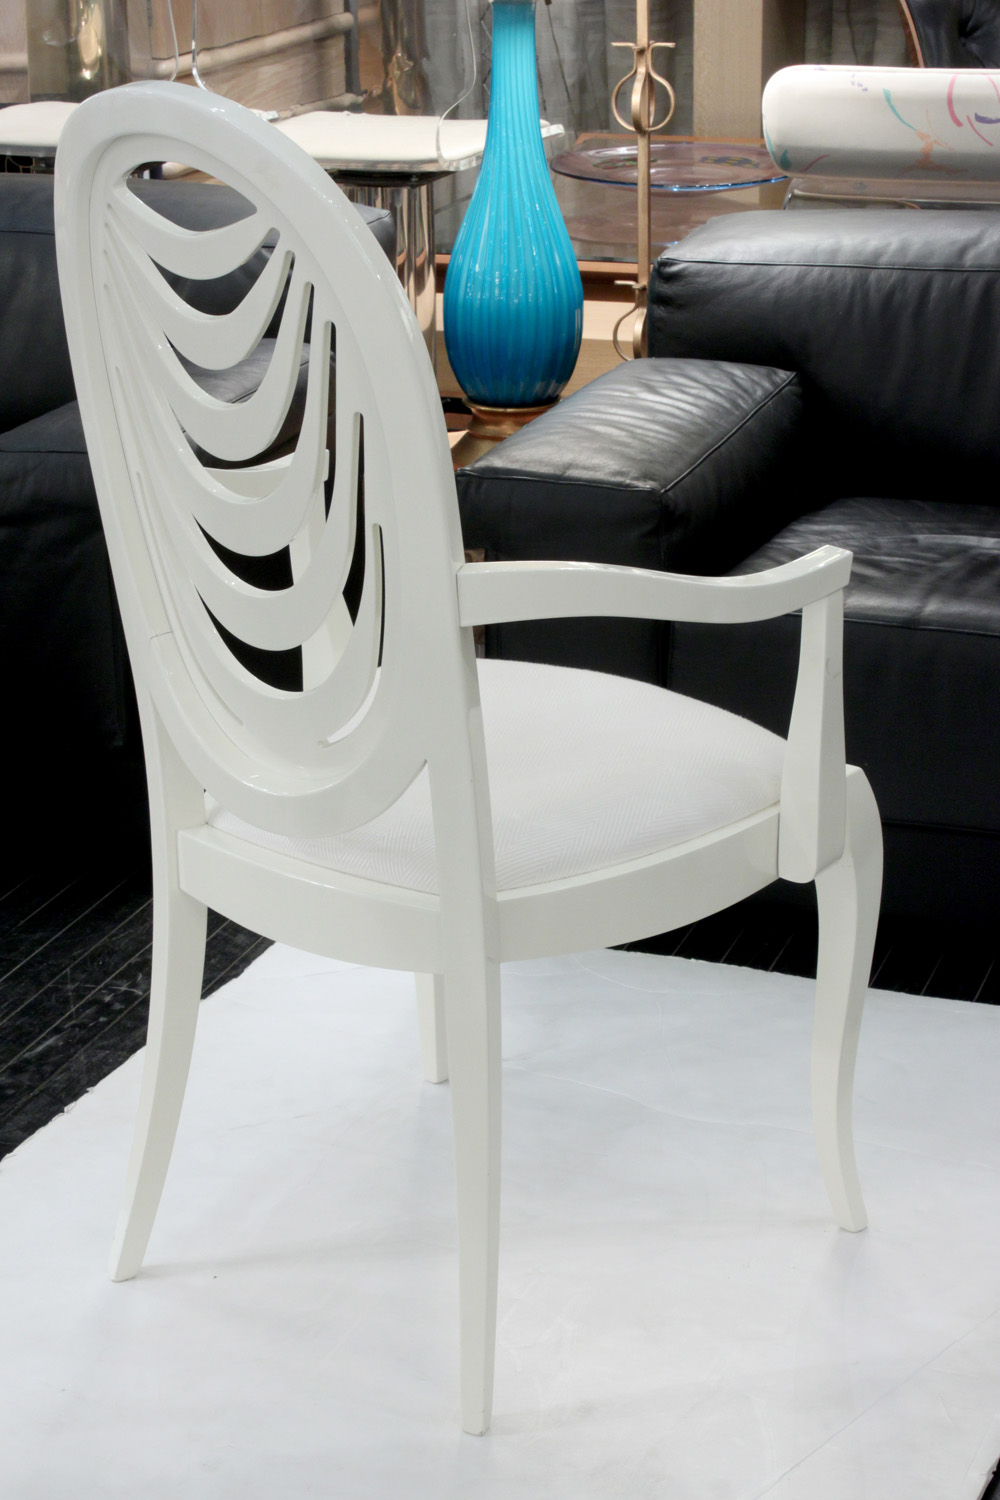 Ital 150 70's draped fabric motic diningchairs172 detail5 hires.jpg